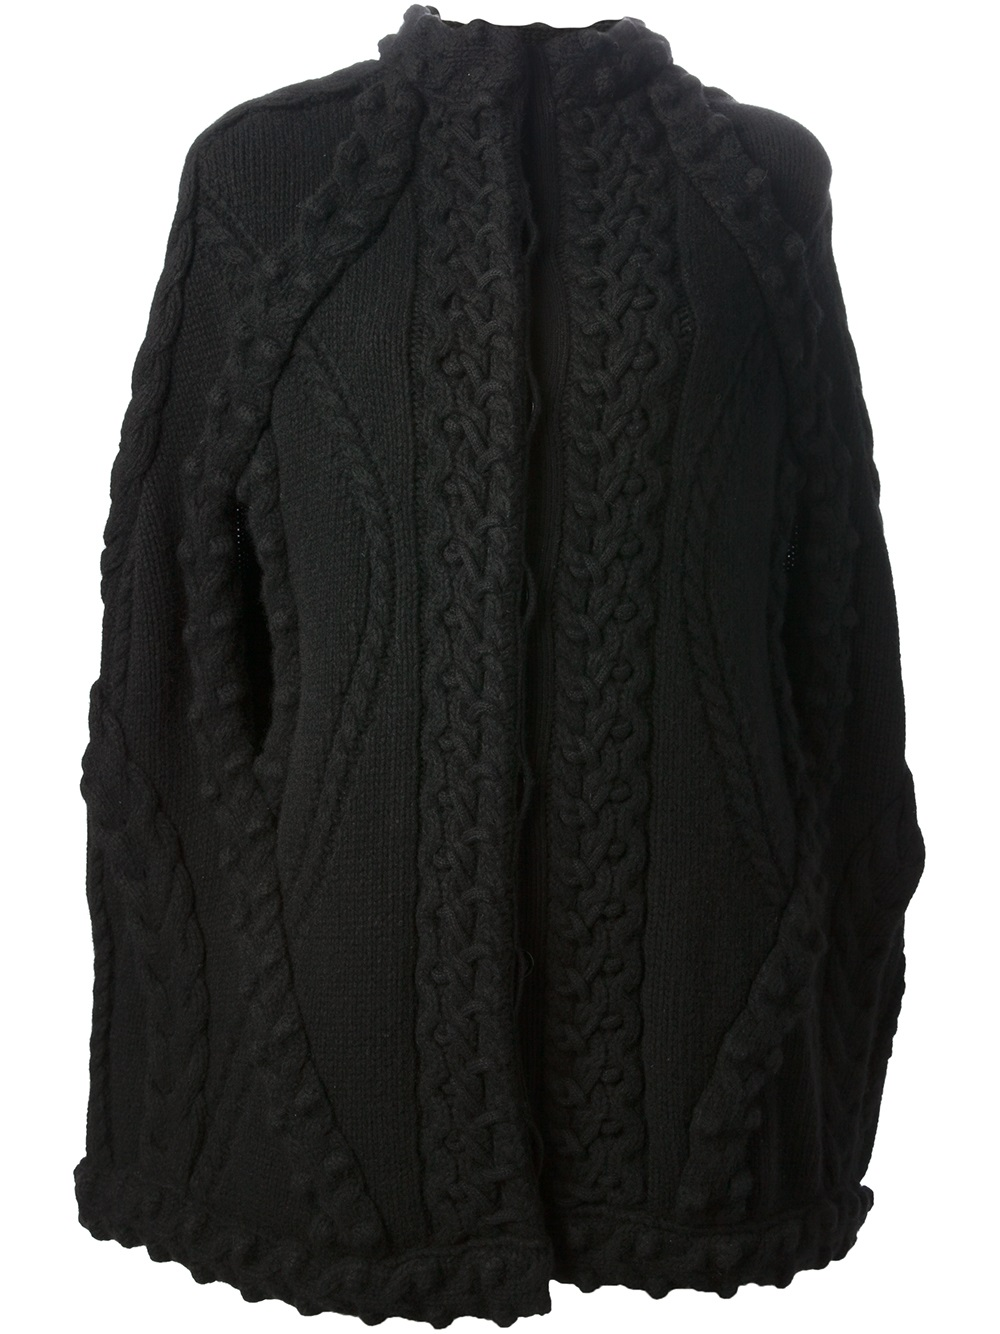 Knitting Pattern Chunky Cape : Alexander Mcqueen Chunky Cable Knit Cape in Black Lyst